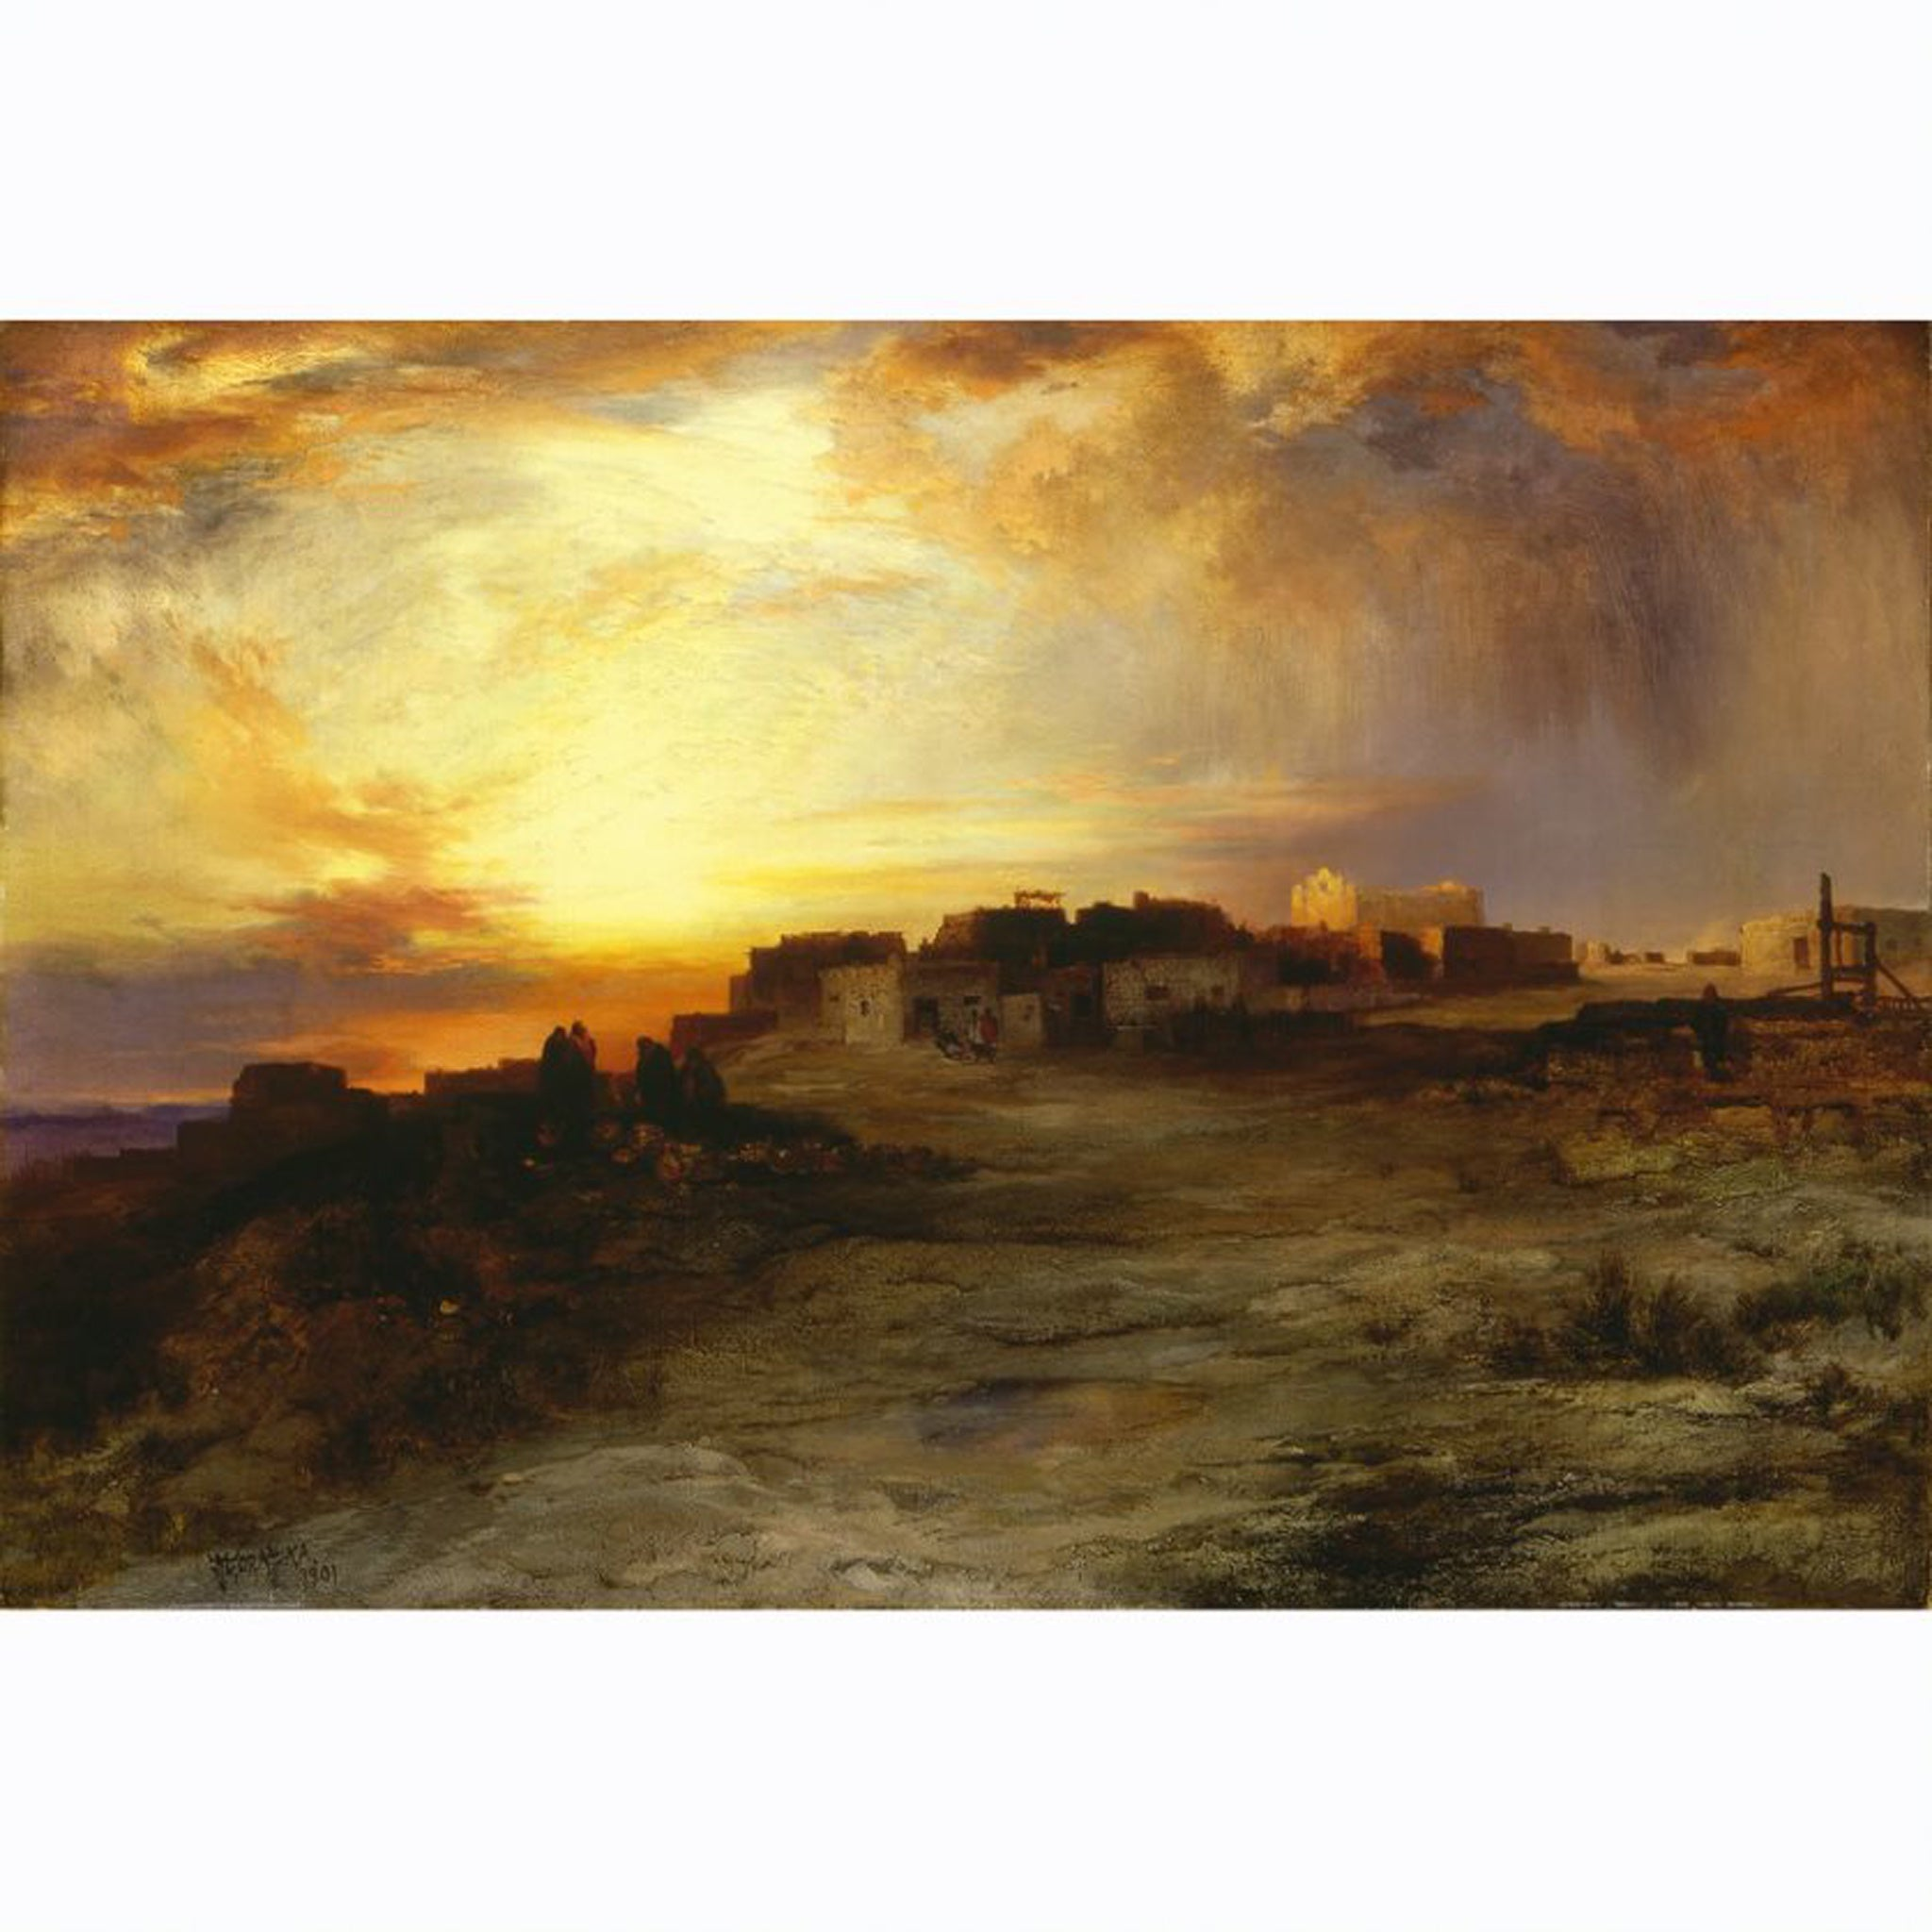 PR 68* PUEBLO AT SUNSET (LAGUNA) BY THOMAS MORAN #31006658